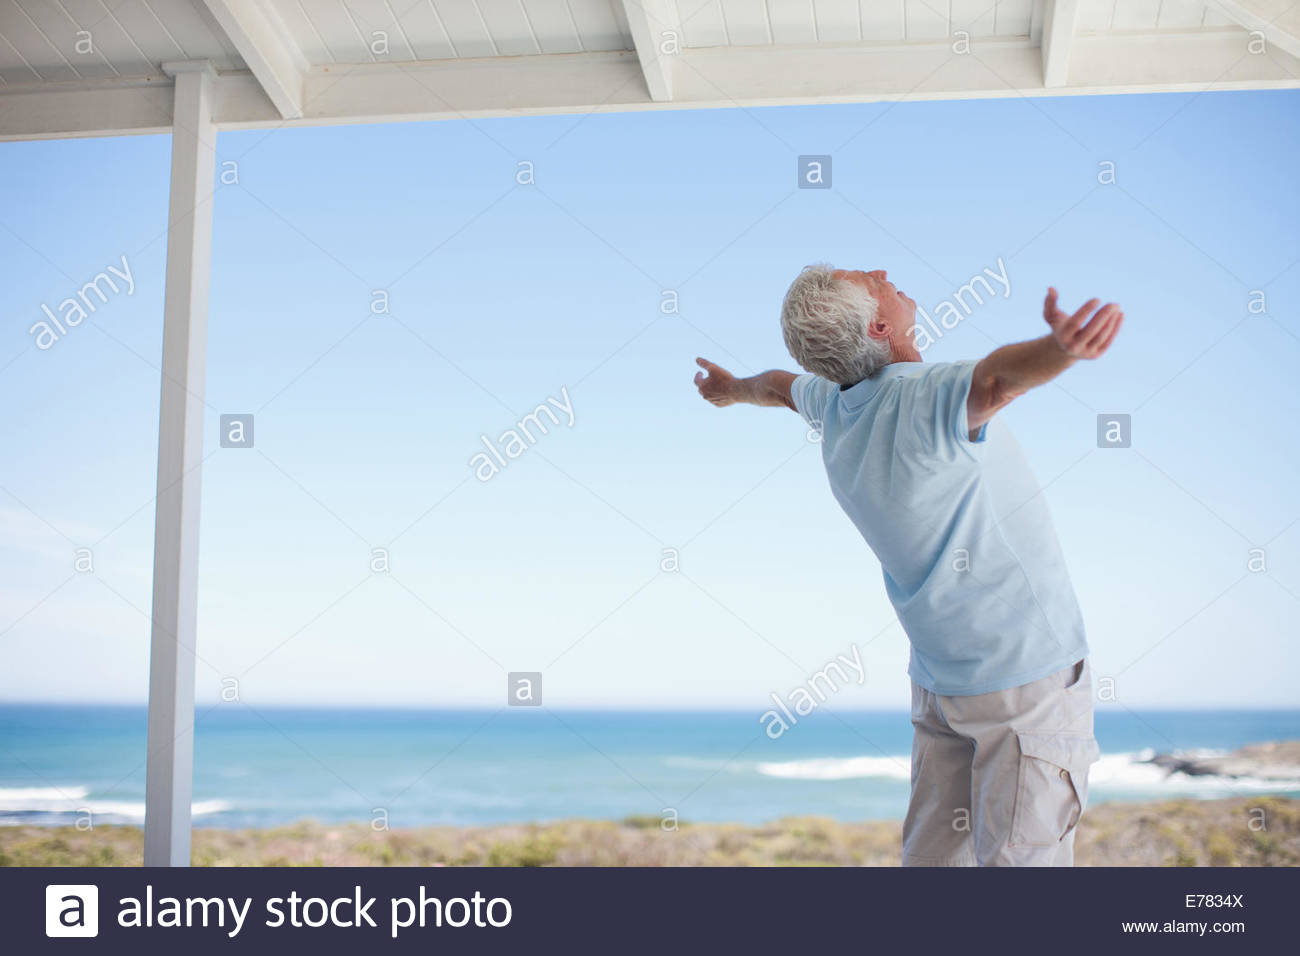 Senior man standing with arms outstretched - Stock Image